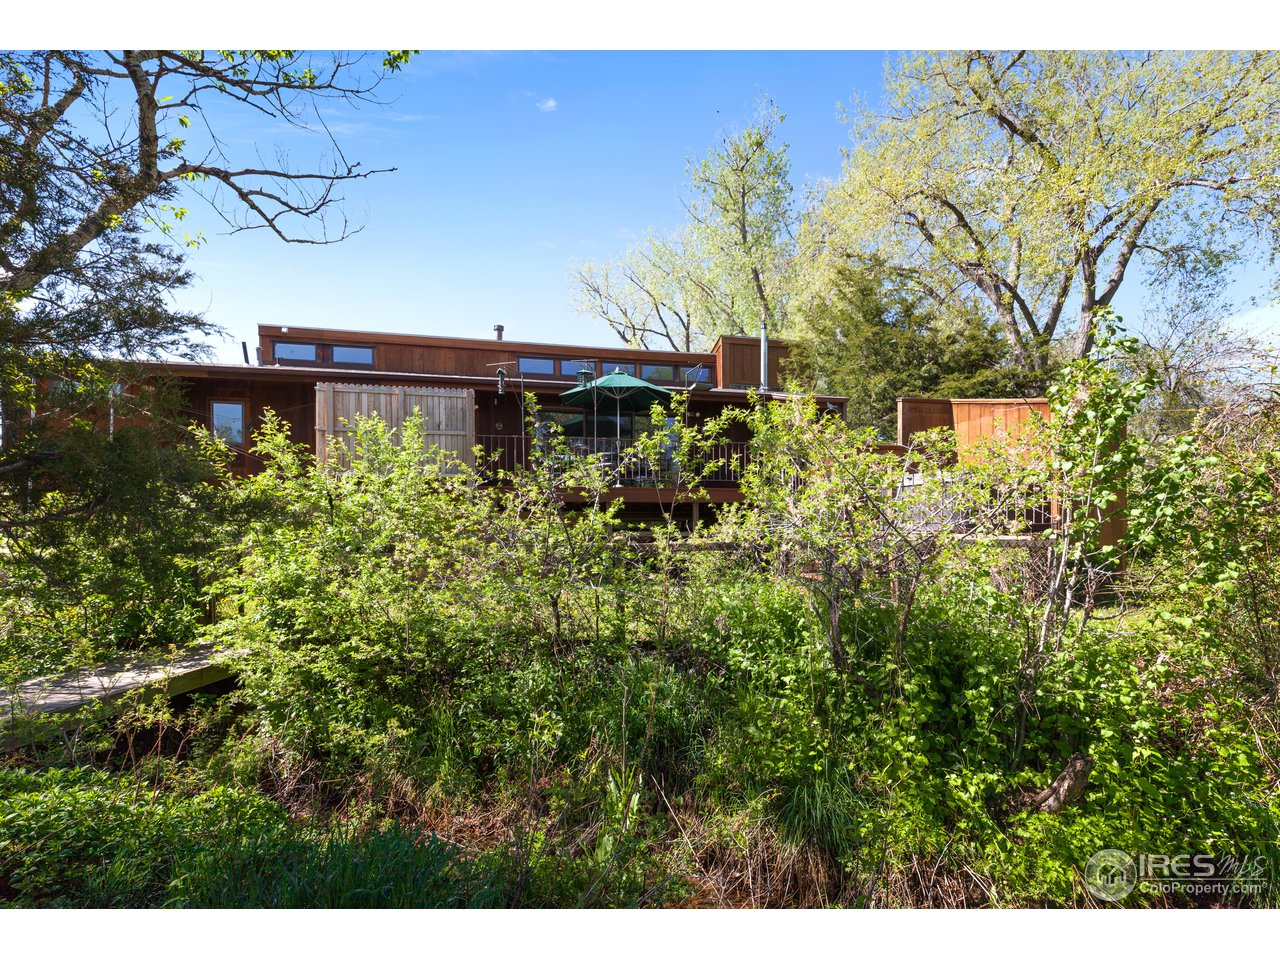 8450 N Foothills Hwy, Boulder CO 80301